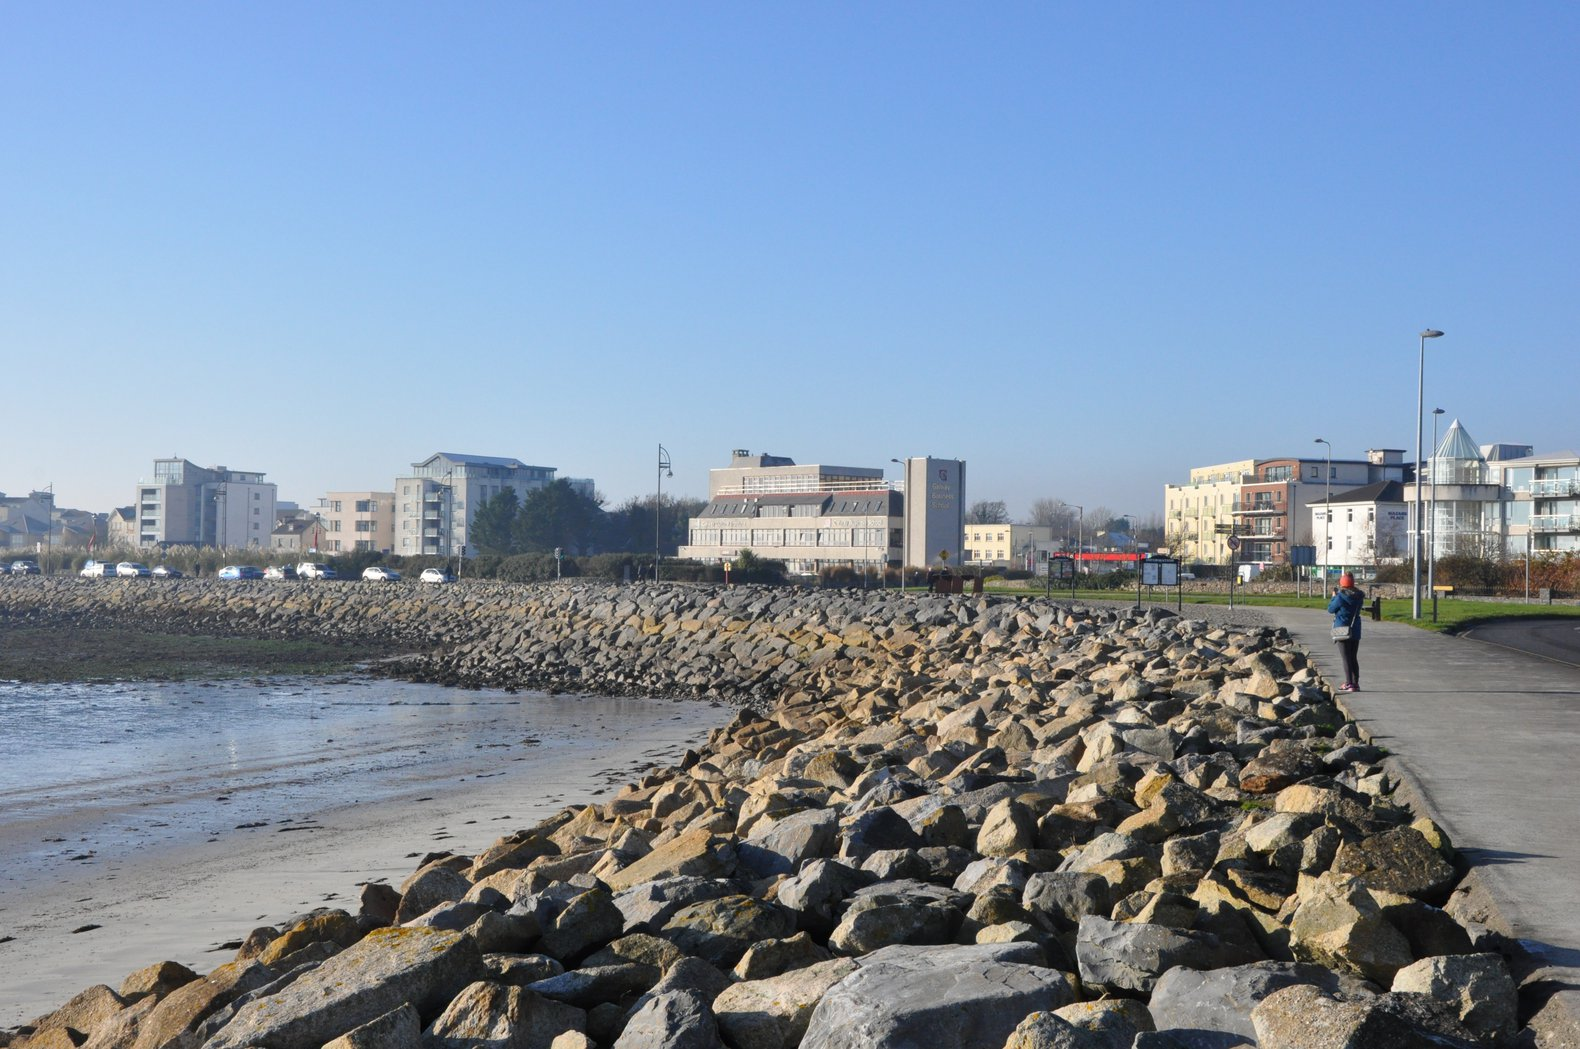 Walk the prom in Salthill | GCI Walking Tour